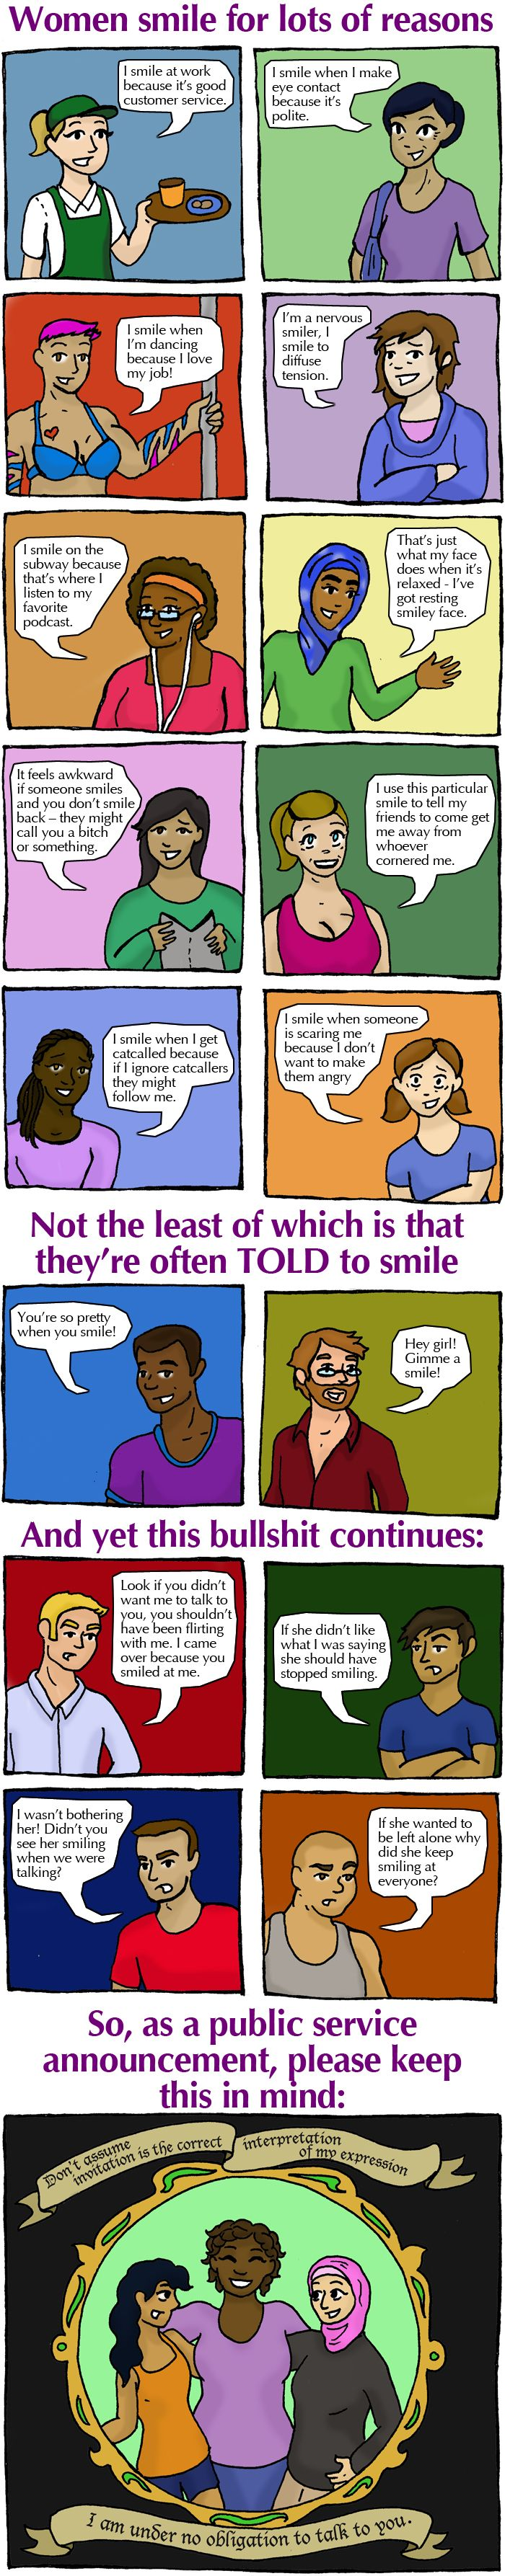 A Smile Isn't an Invitation for Harassment – So Could You Stop, Please? — Everyday Feminism